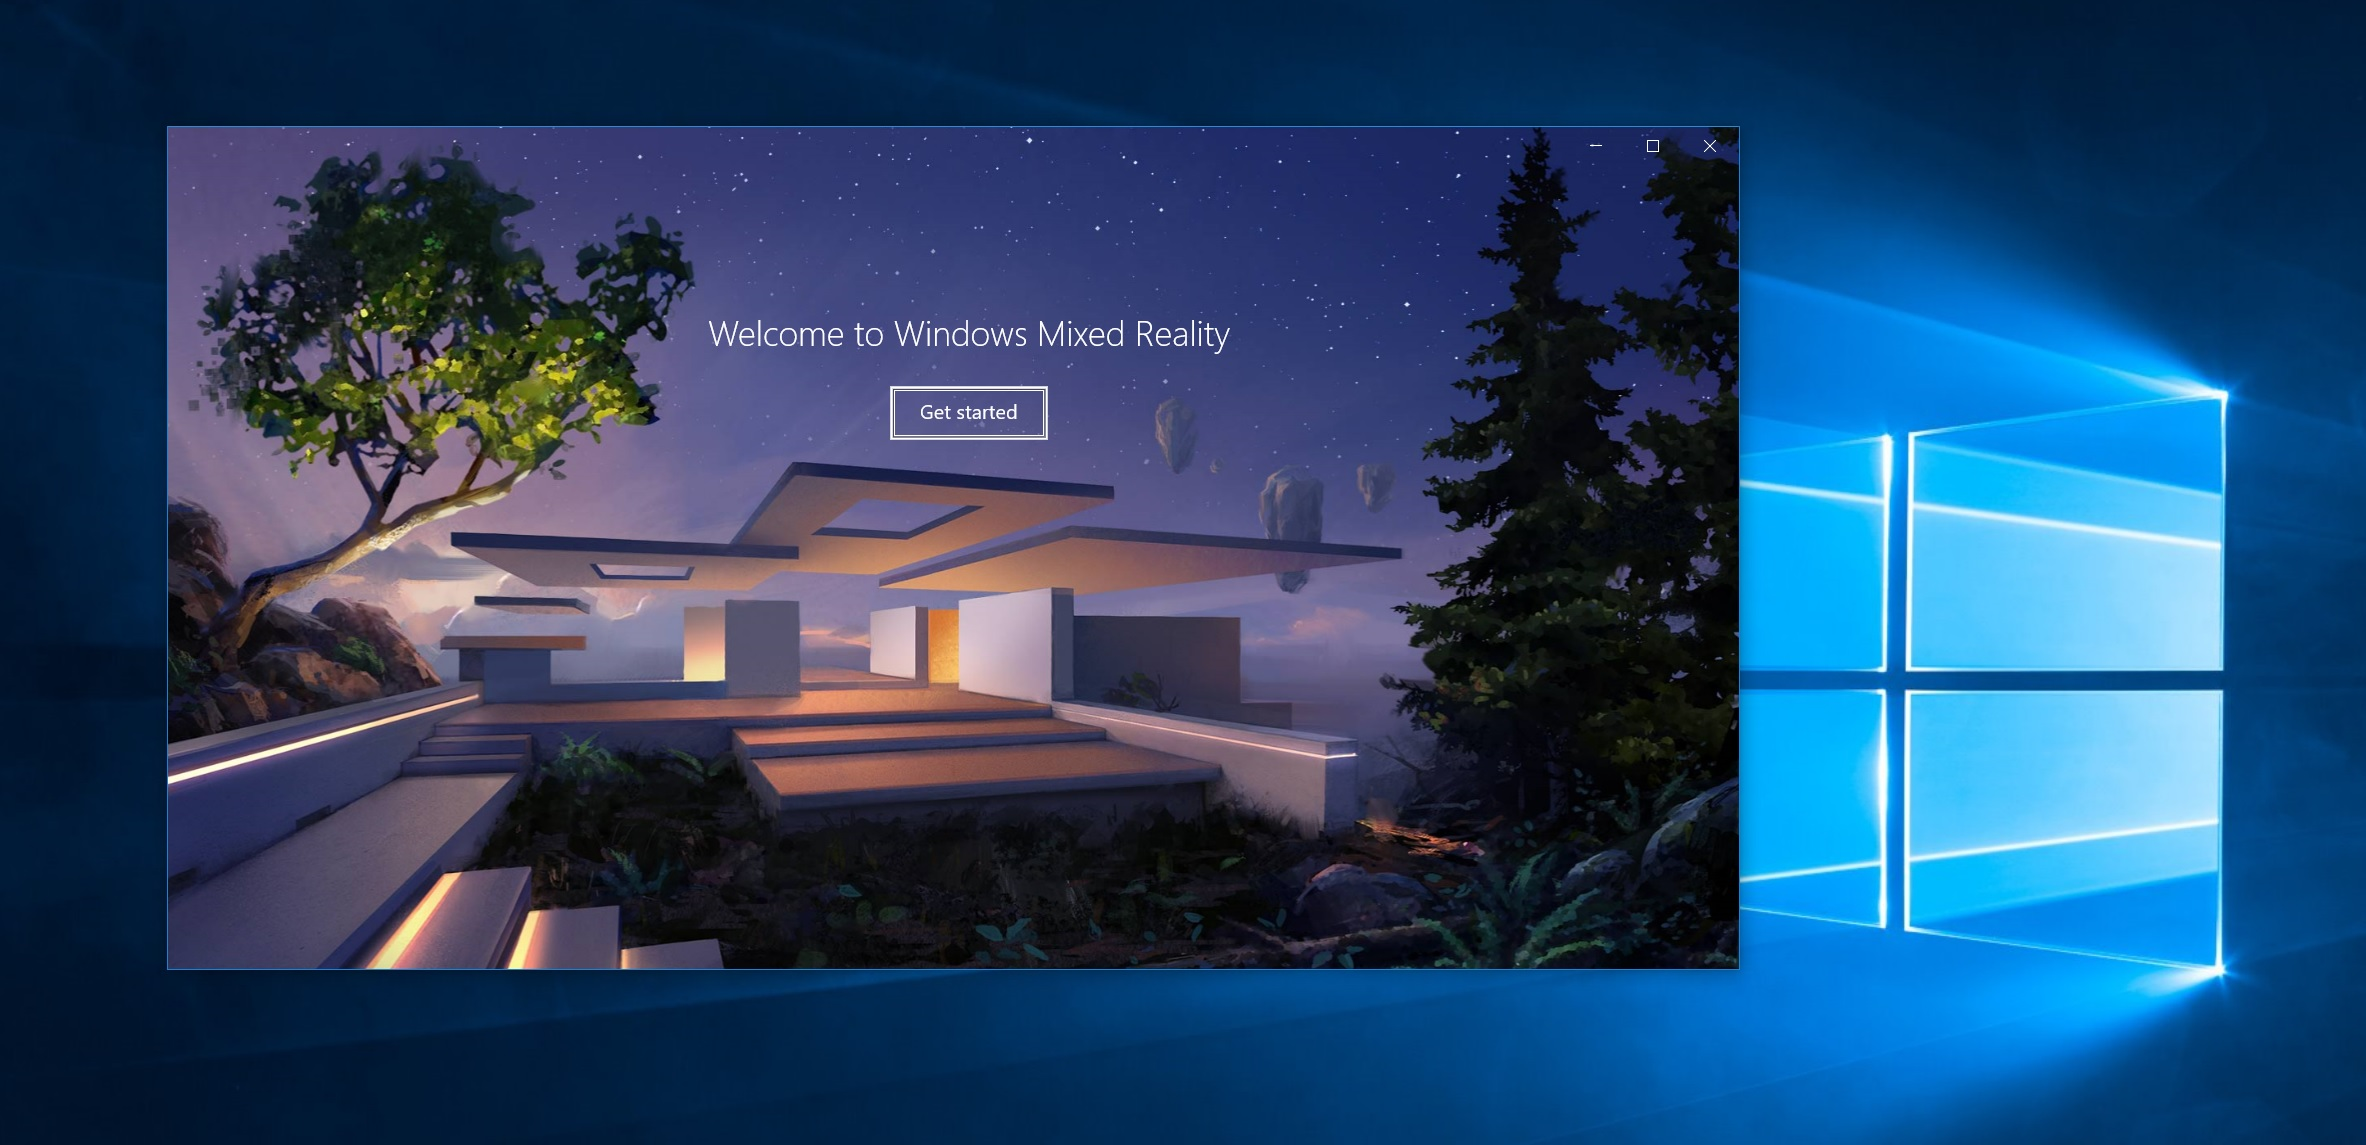 Windows Mixed Reality portal Welcome screen